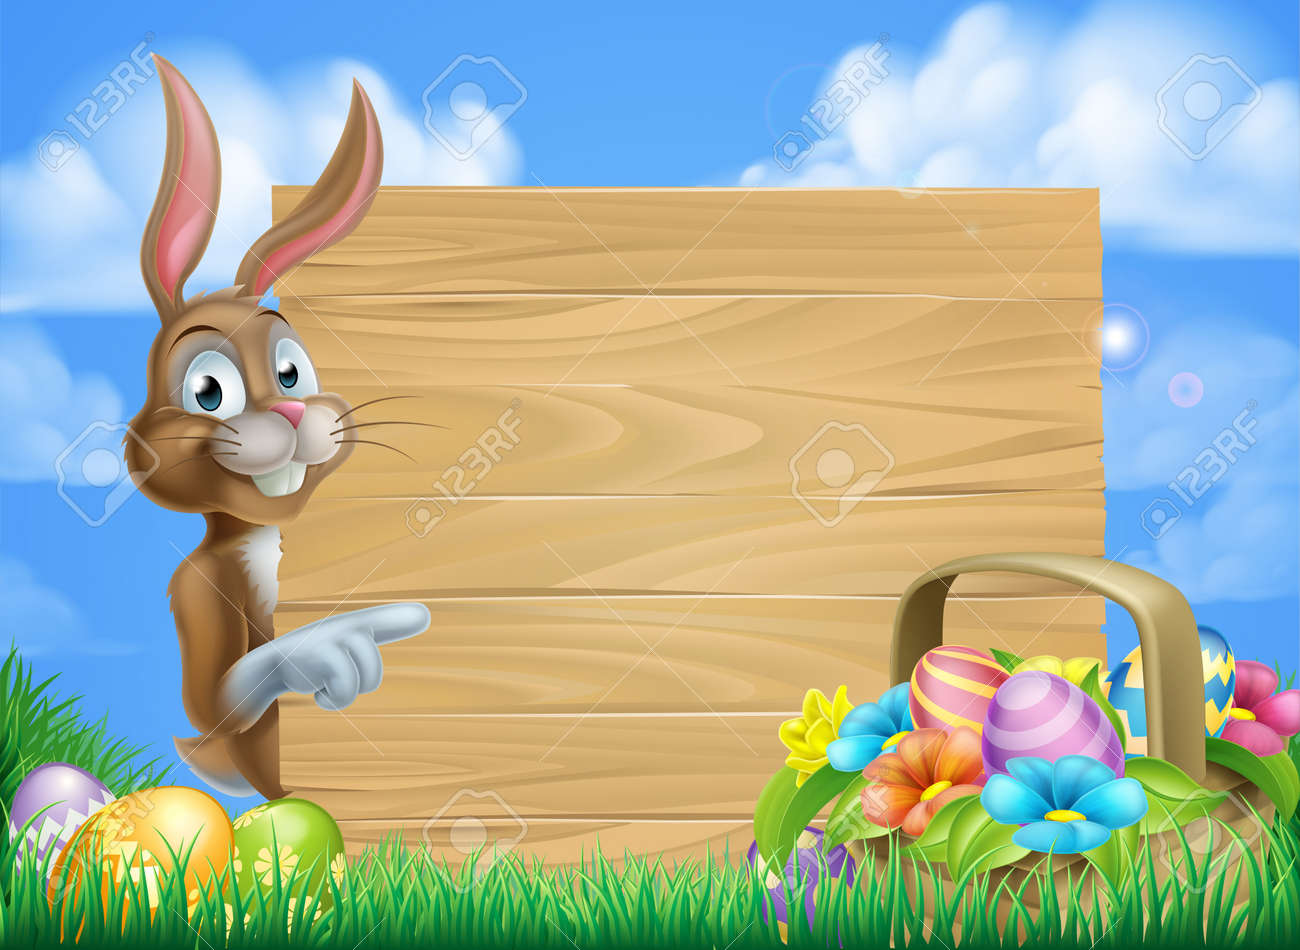 Cartoon Easter bunny and Easter basket full of Easter eggs background - 50898931